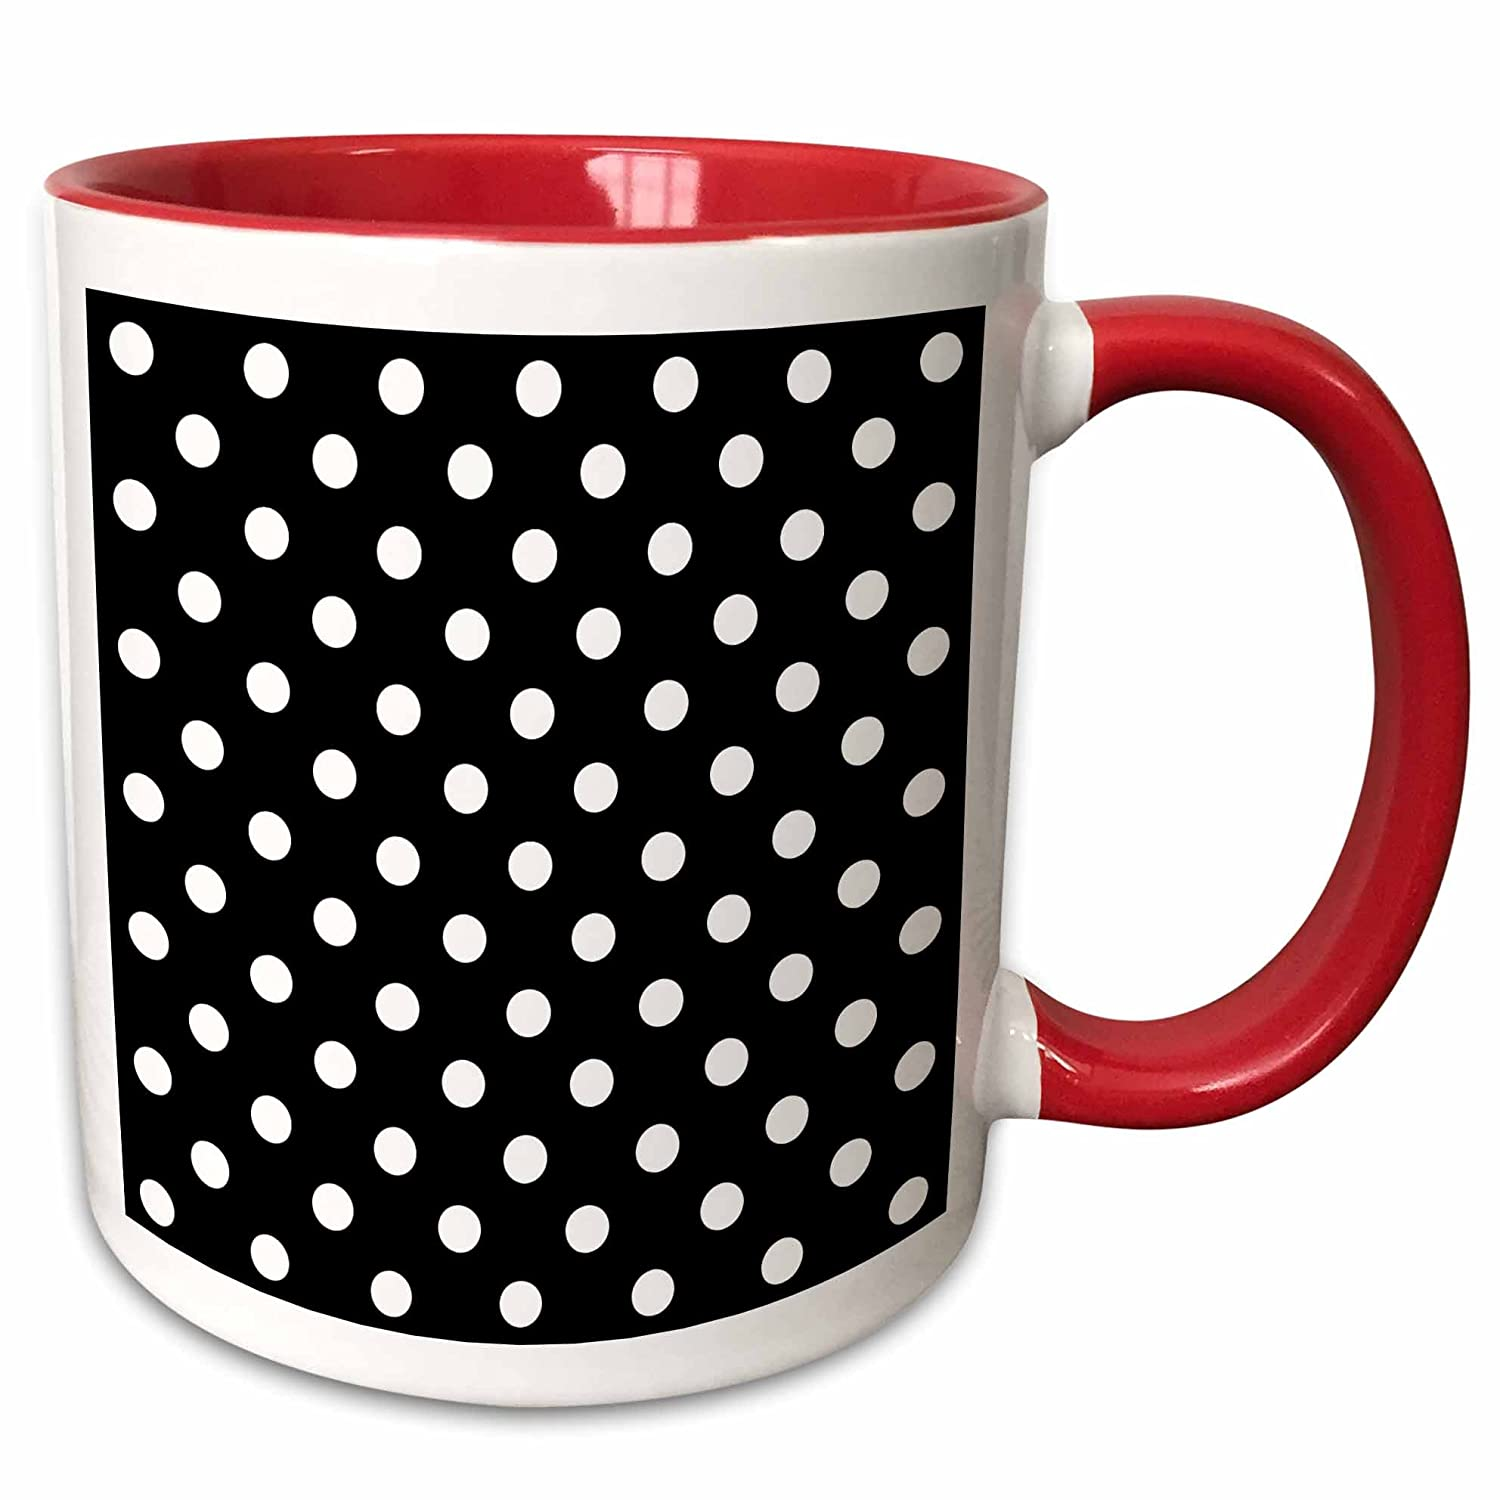 11 oz, Red Mug 3dRose 20402/_5Black and White Polka Dot Print